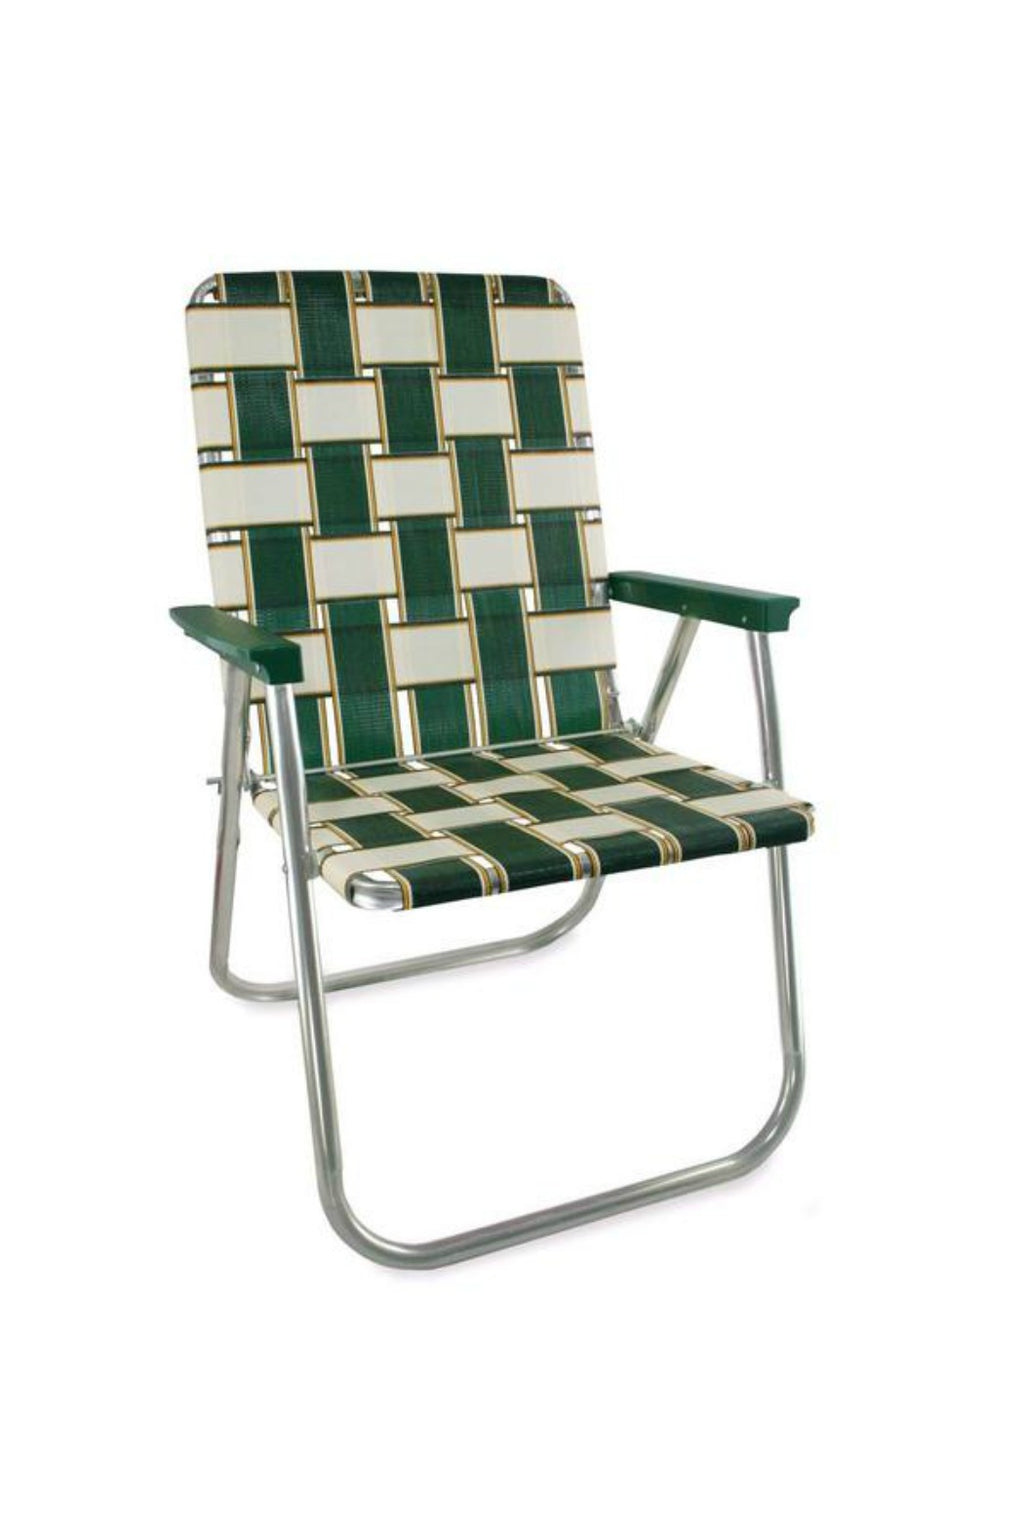 Classic Lawn Chair - Charleston Deluxe